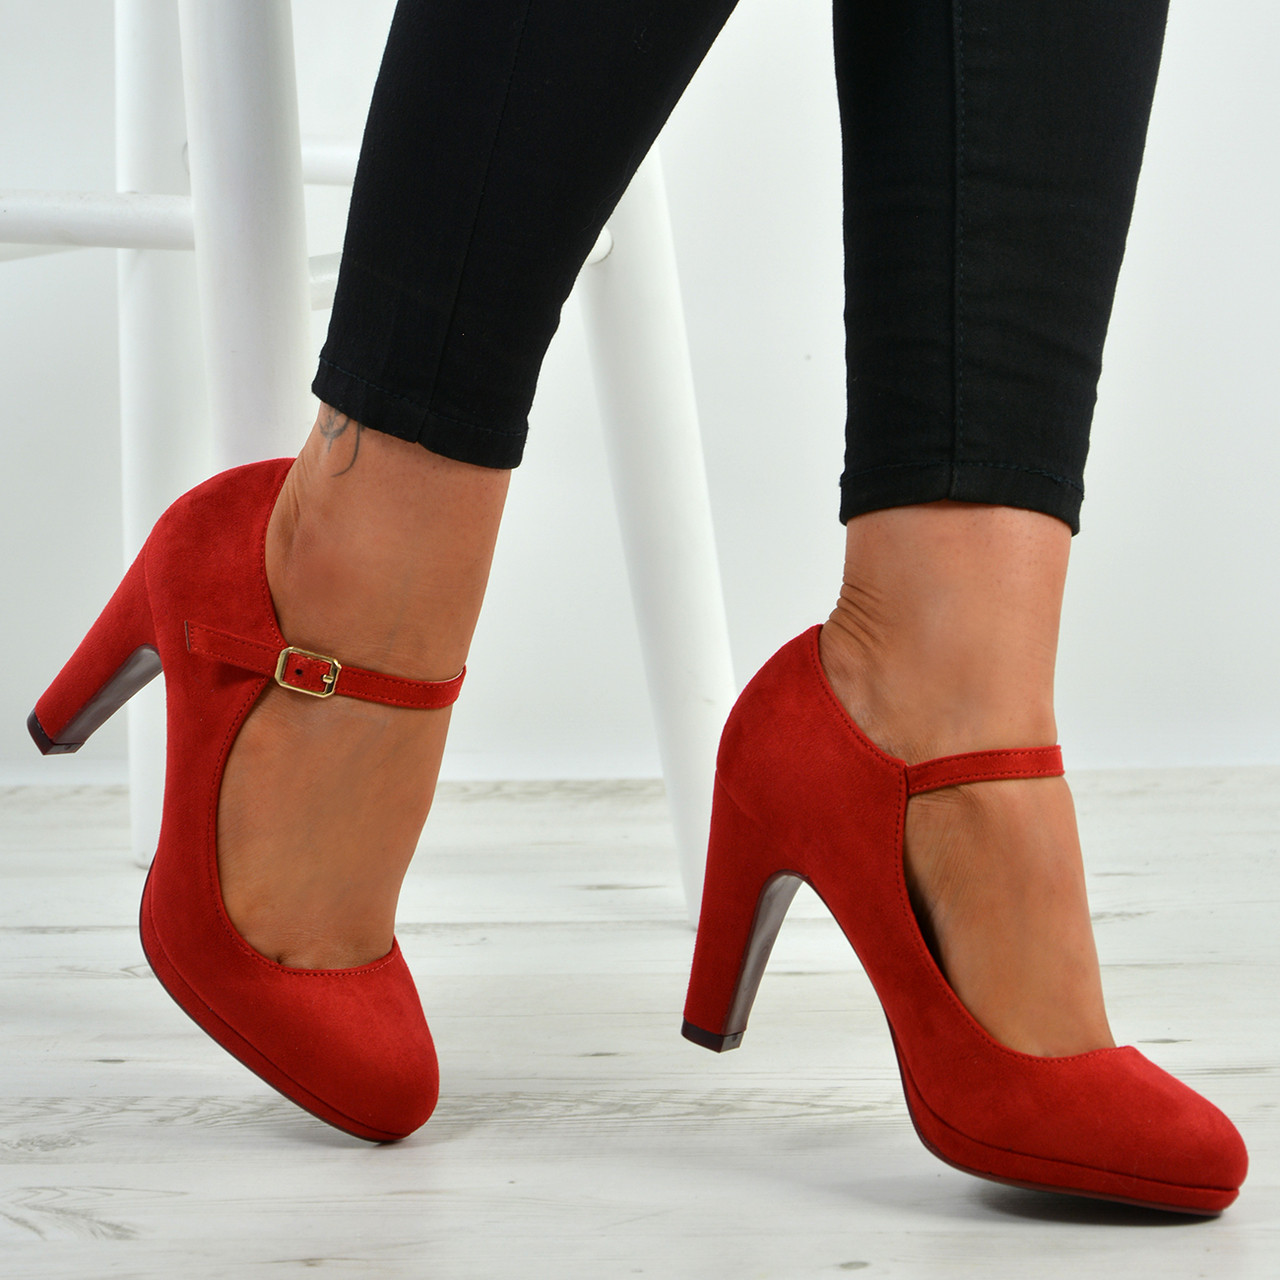 1c7e0f60f57 New Womens Ankle Strap Pumps Ladies High Block Heel Buckle Shoes Size Uk 3-8